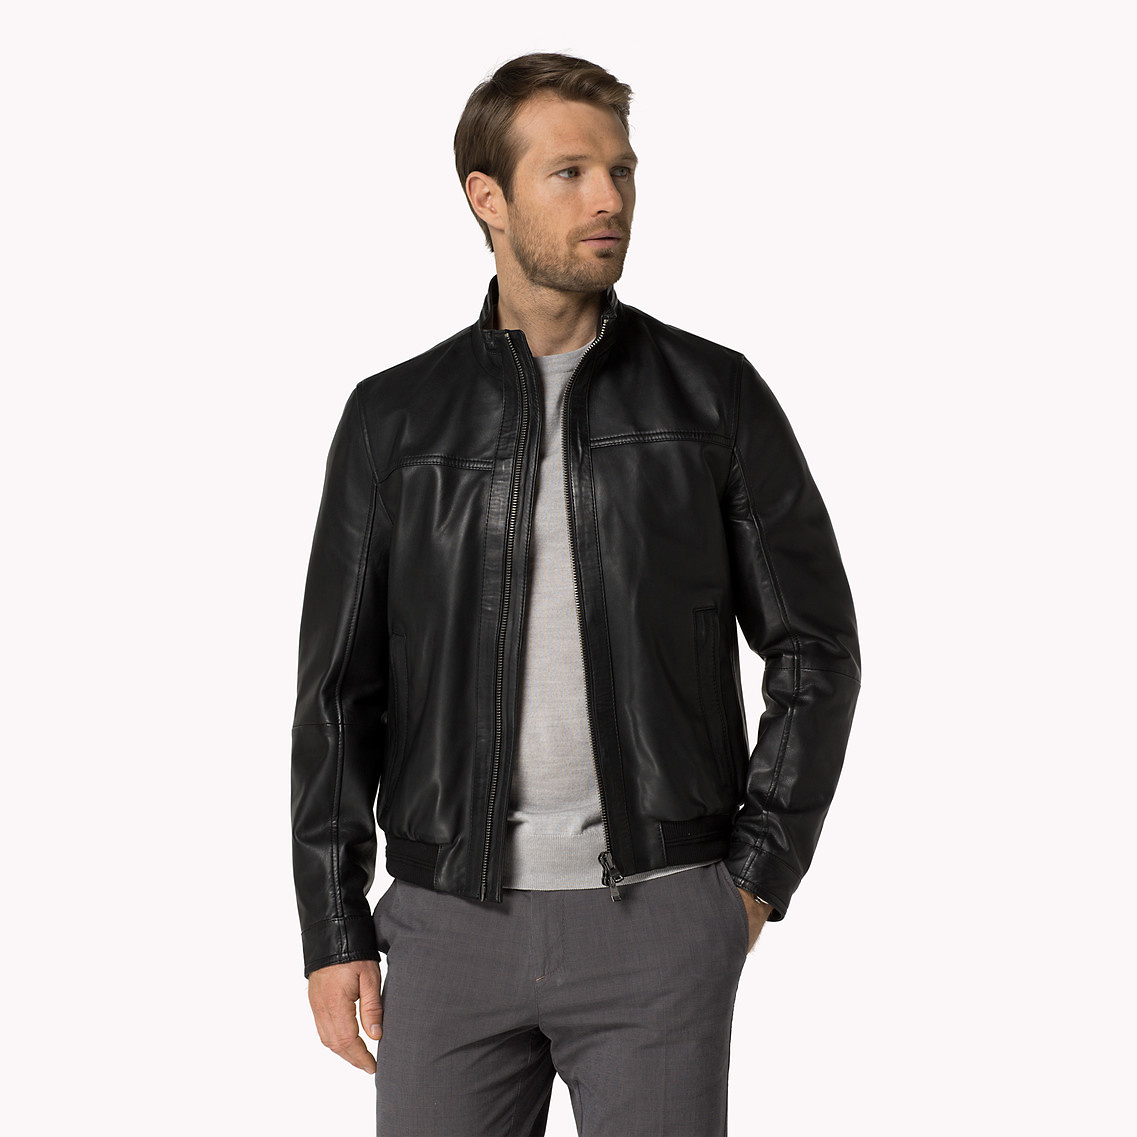 lyst tommy hilfiger ferdi leather jacket in black for men. Black Bedroom Furniture Sets. Home Design Ideas